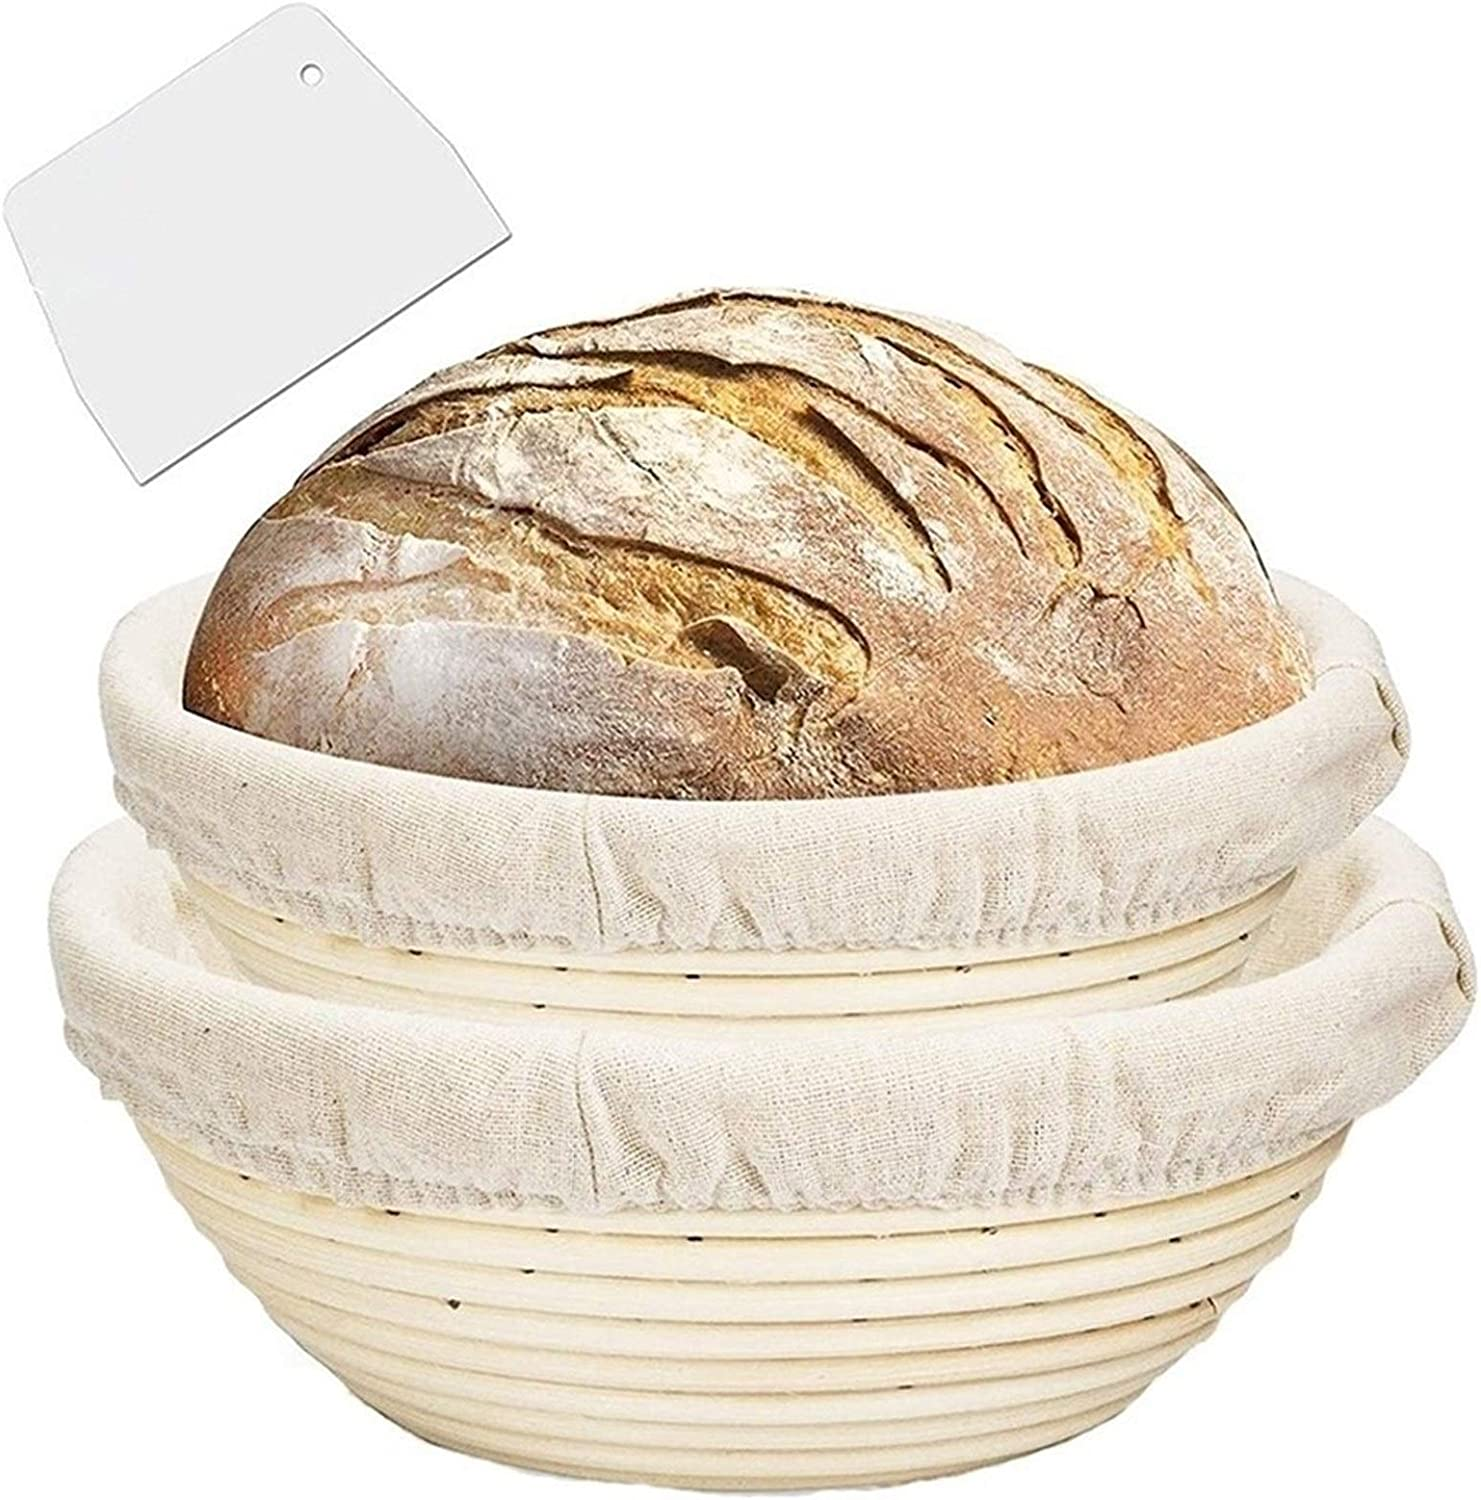 YWSZY Bread Proofing Baskets 2 10-inch Brea Baking and Nine-inch 35% Cheap OFF